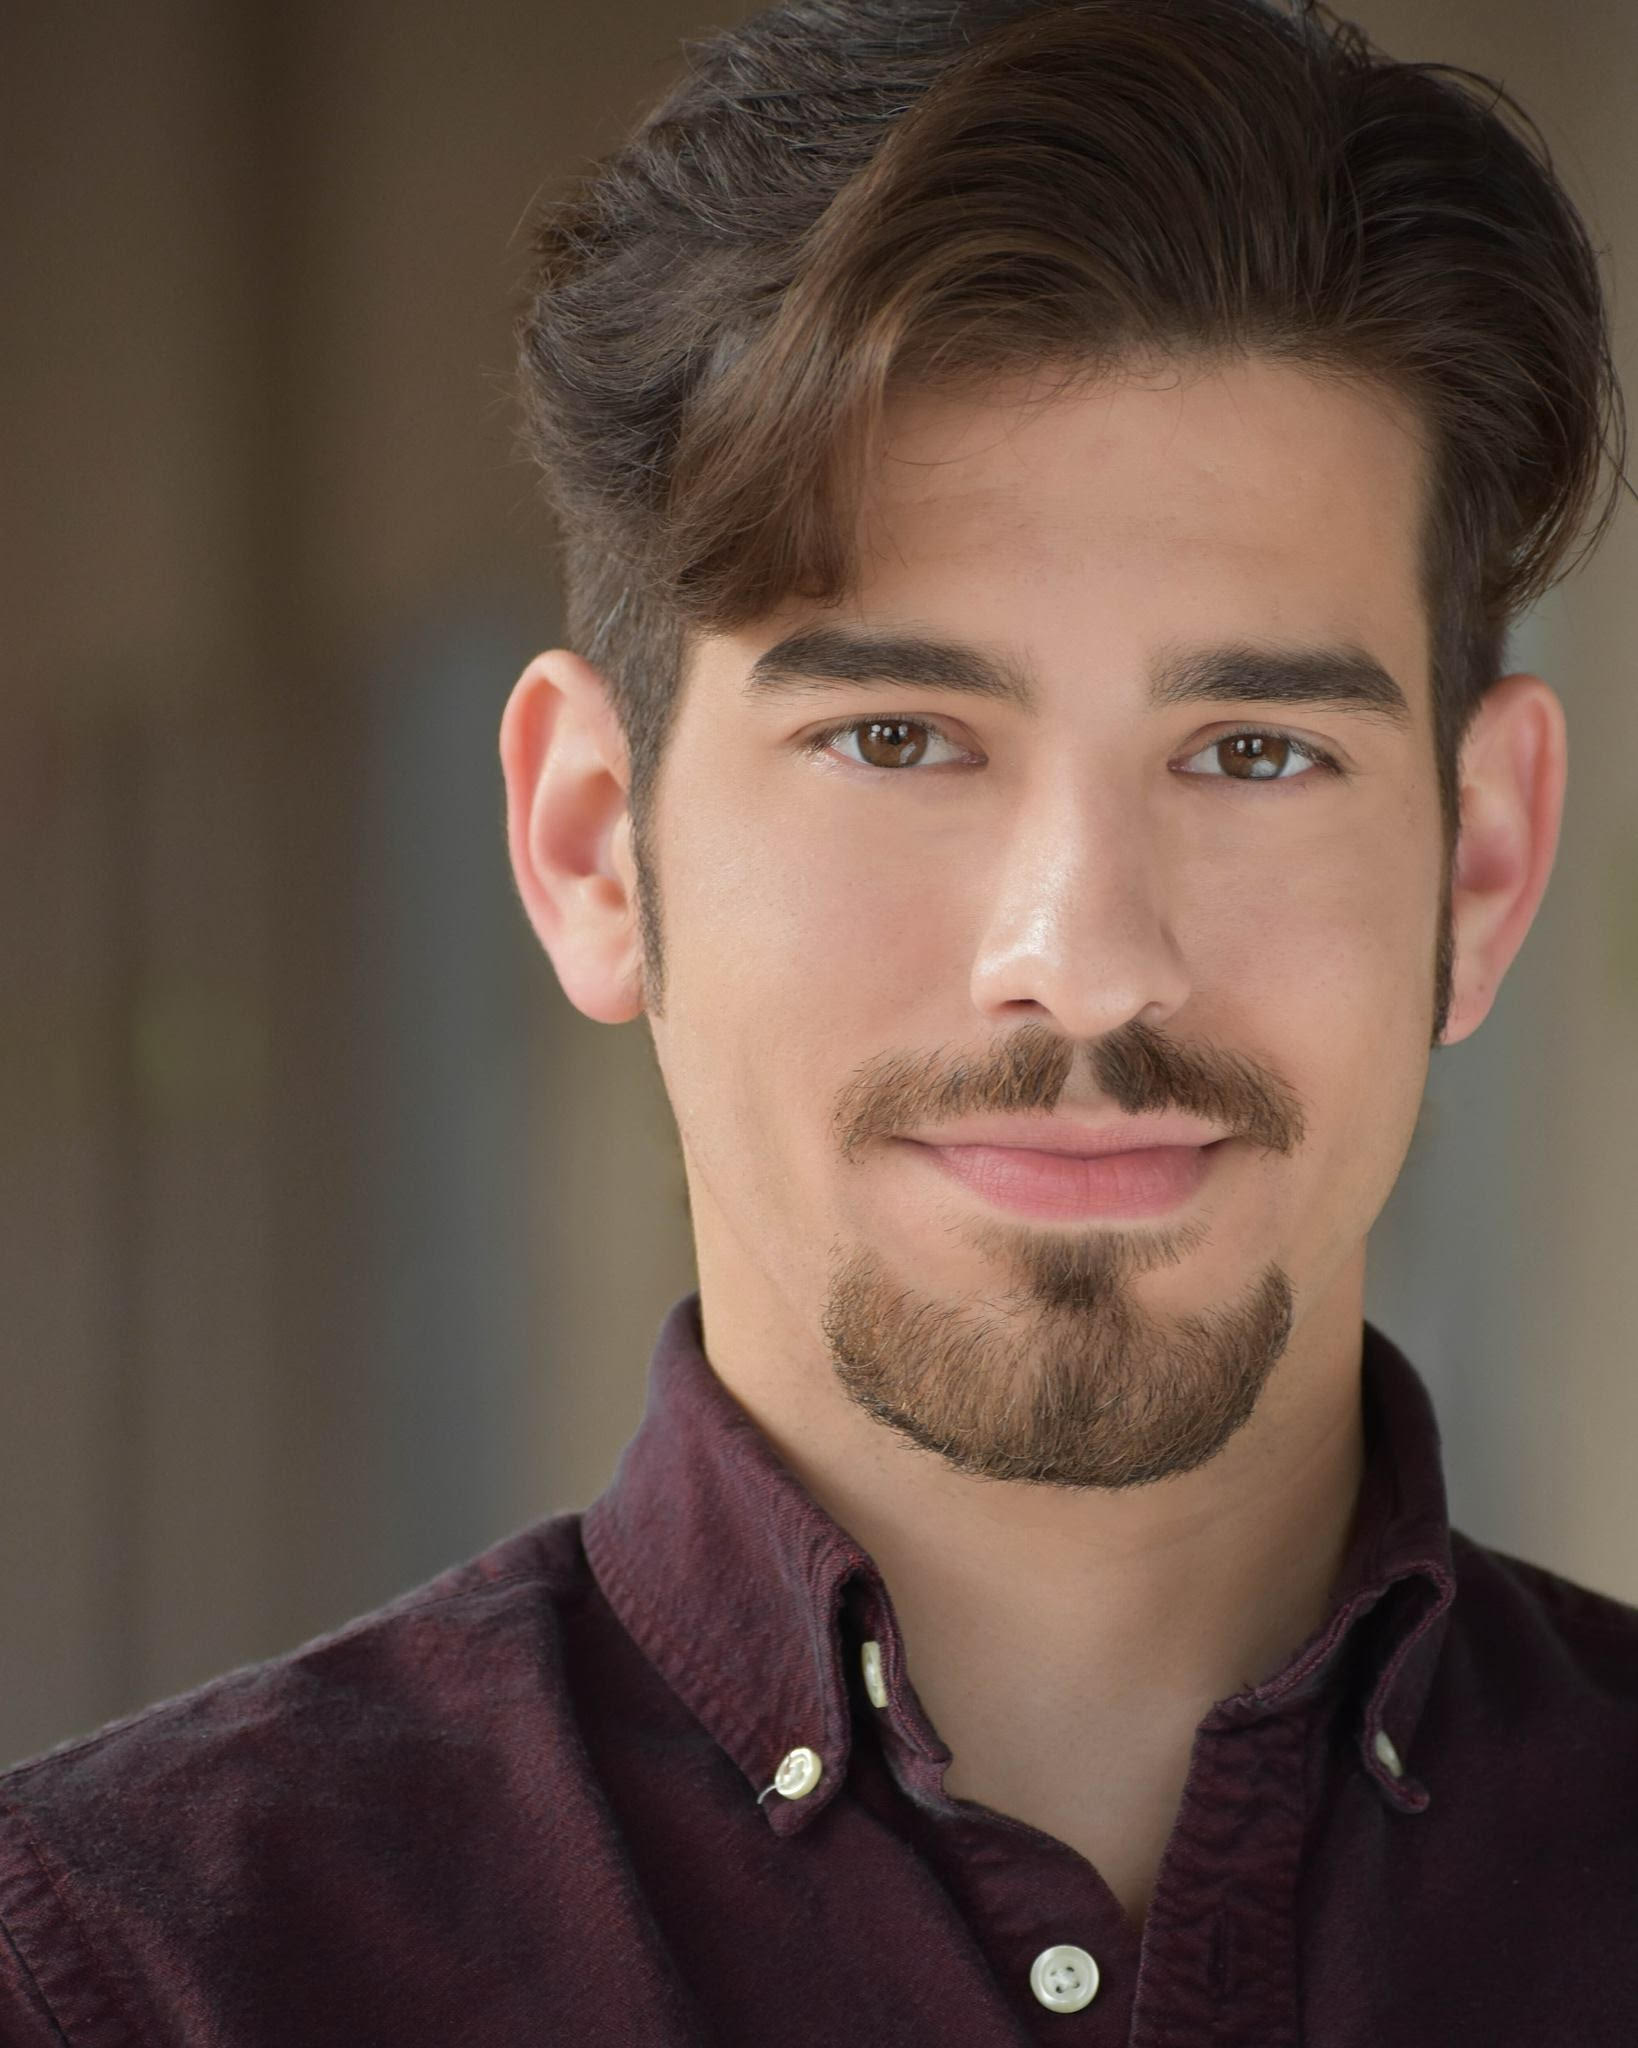 Michael Hazin -  Michael Hazin has been busy performing in  Rock of Ages  in July 2017, in the title role in  Evil Dead The Musical  in October 2017, the  Love is Love  Cabaret; The Restoration's  Constance ; The Lexington Festival of the Arts, and as a member of The Mothers for their 2017-2018 season. He is currently rehearsing for  Curious Incident of the Dog in the Nighttime.